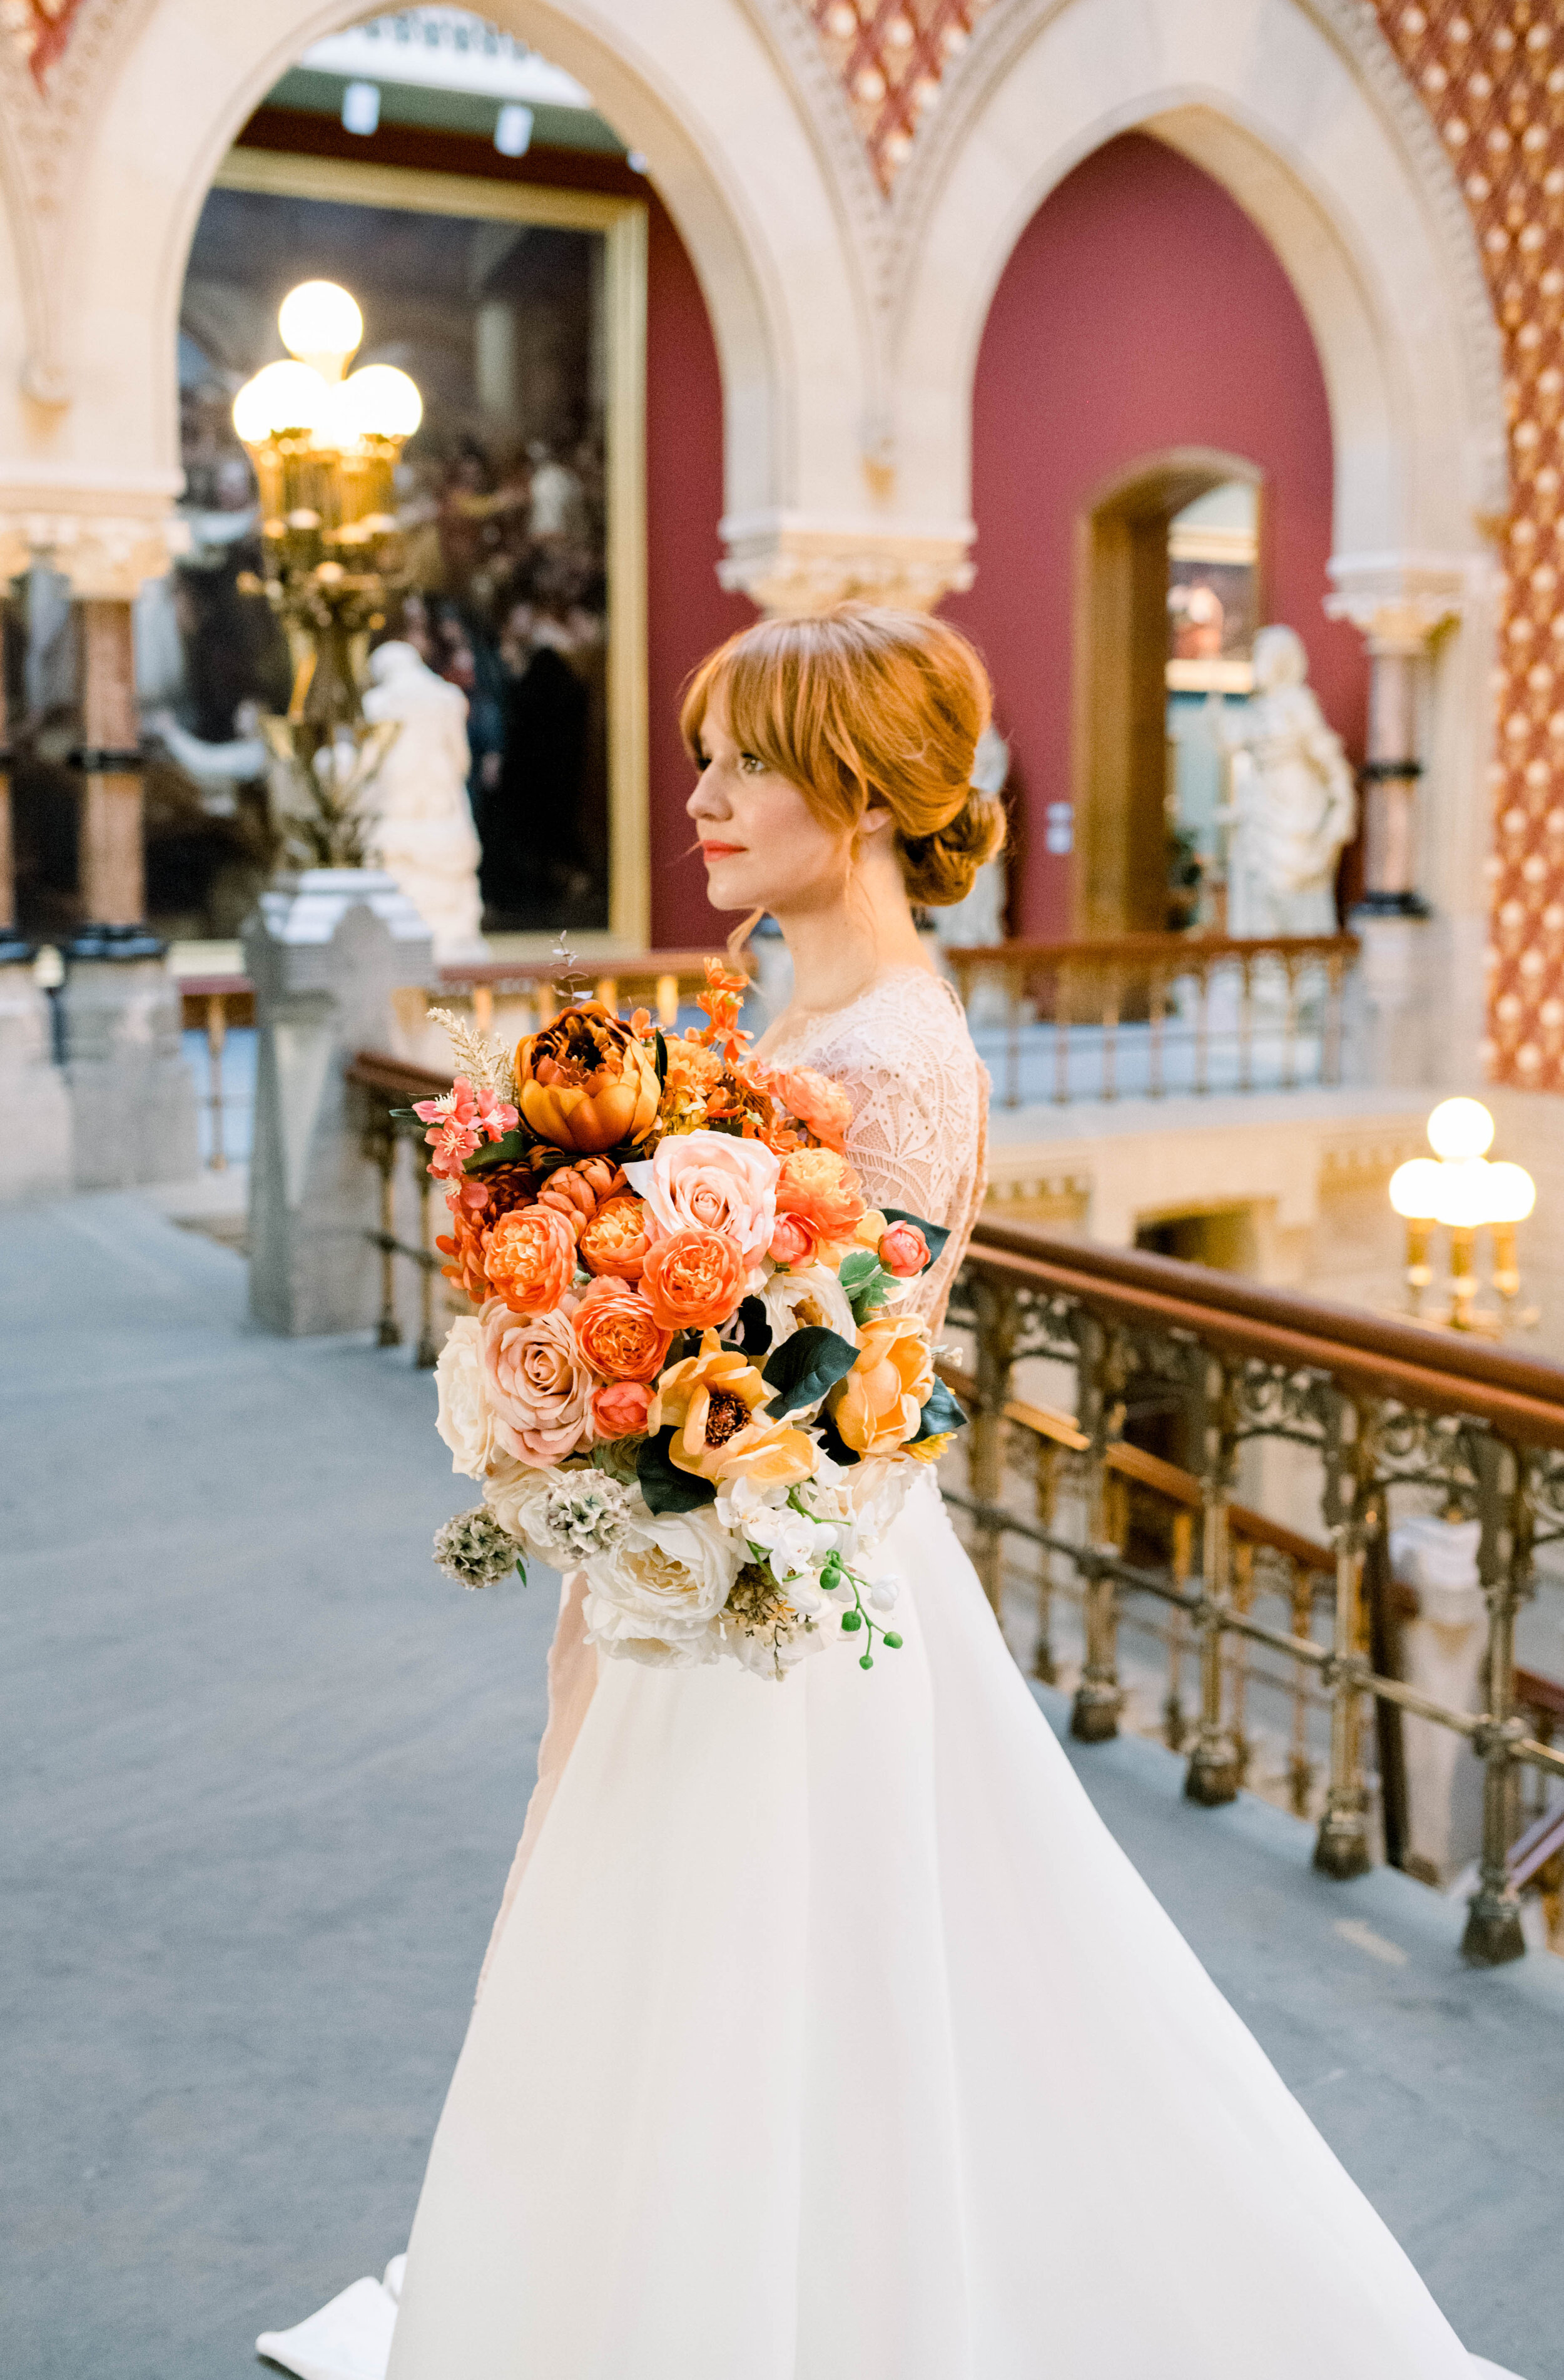 Pennsylvania academy of the arts+pafa+pafa weddings+philly wedding+fall wedding+modern yet timeless wedding+museum+bridal portrait+photo